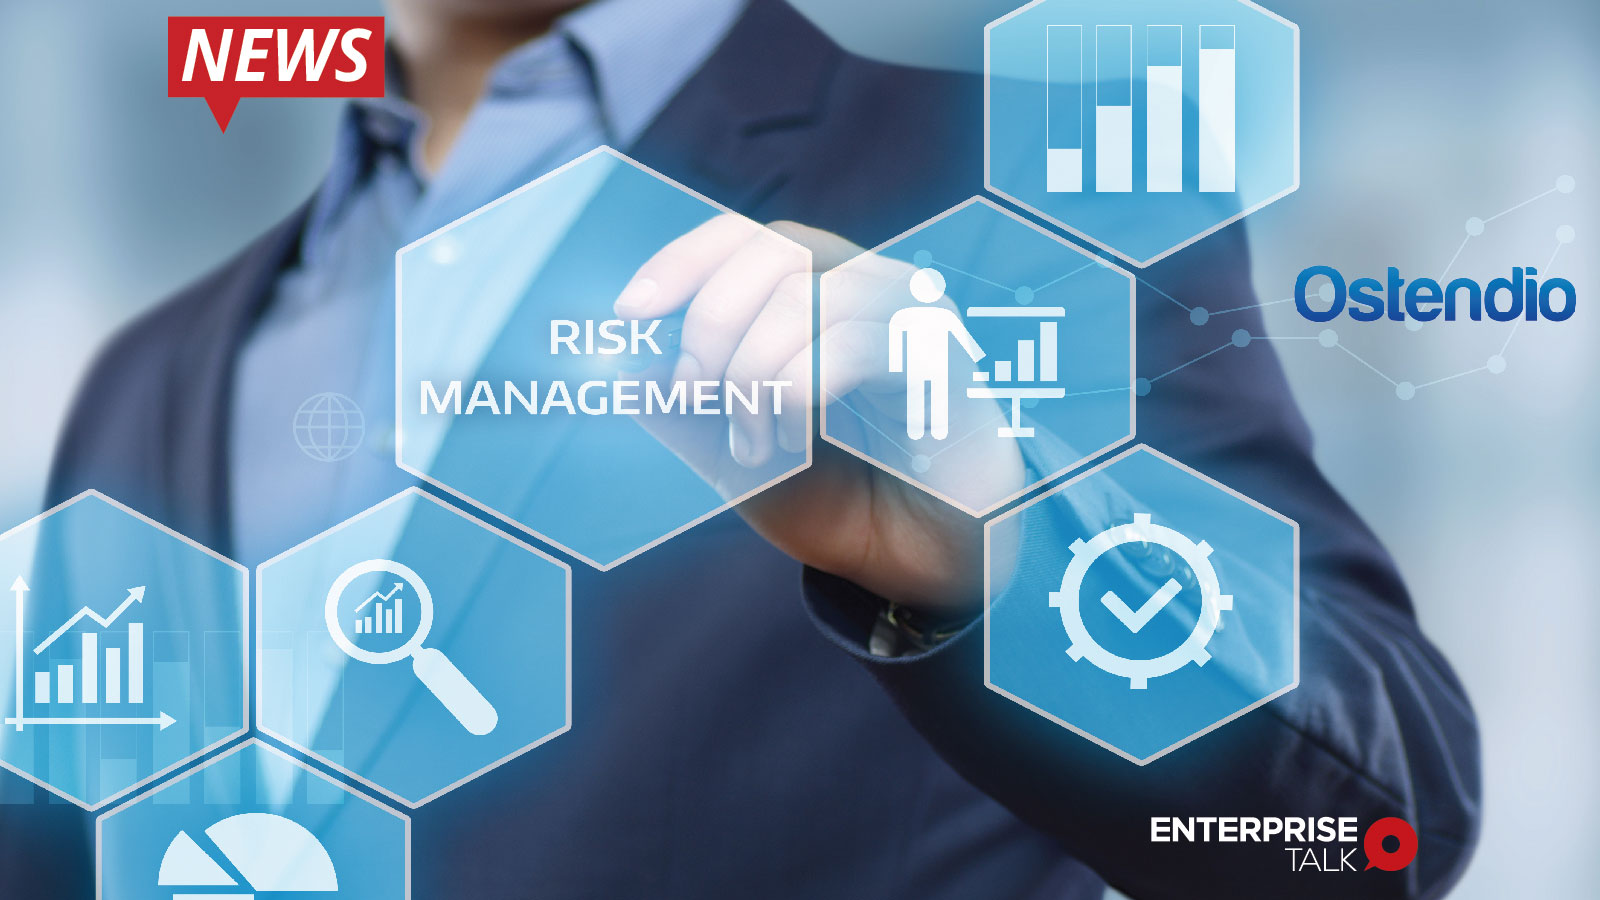 Ostendio , MyVCM Vendor Connect, cybersecurity and risk management, Vendor Risk Management